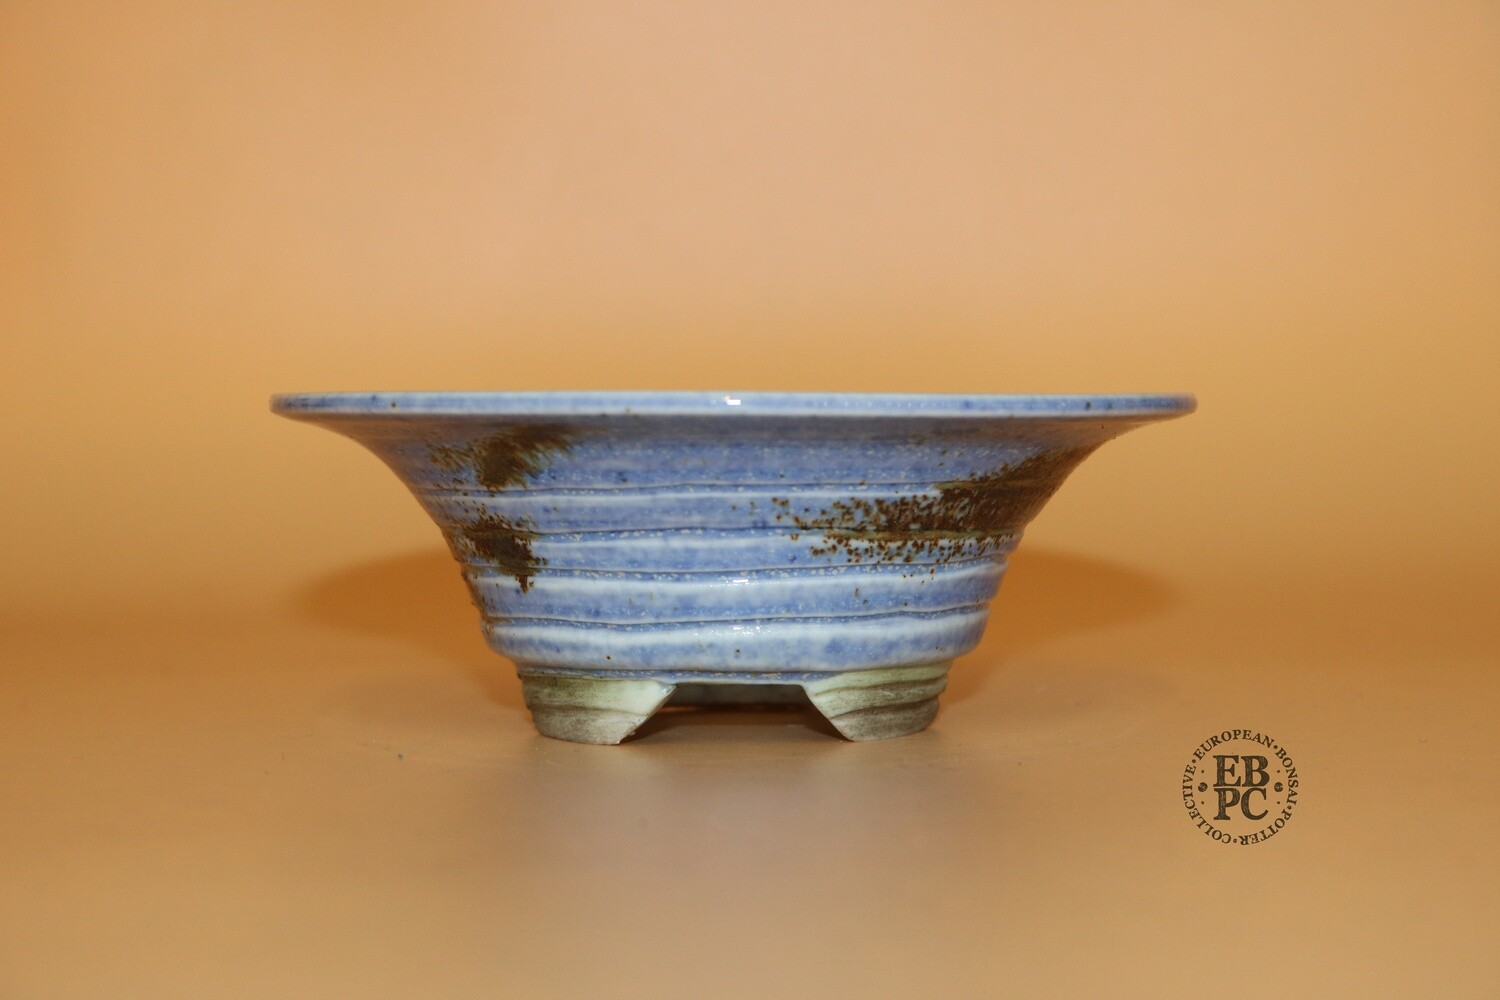 EBL Pots - 12.3cm; Porcelain; Shohin / Accent pot; Round; Blue; Volcanic Sand; Detailed Feet; Elsebeth Ludvigsen